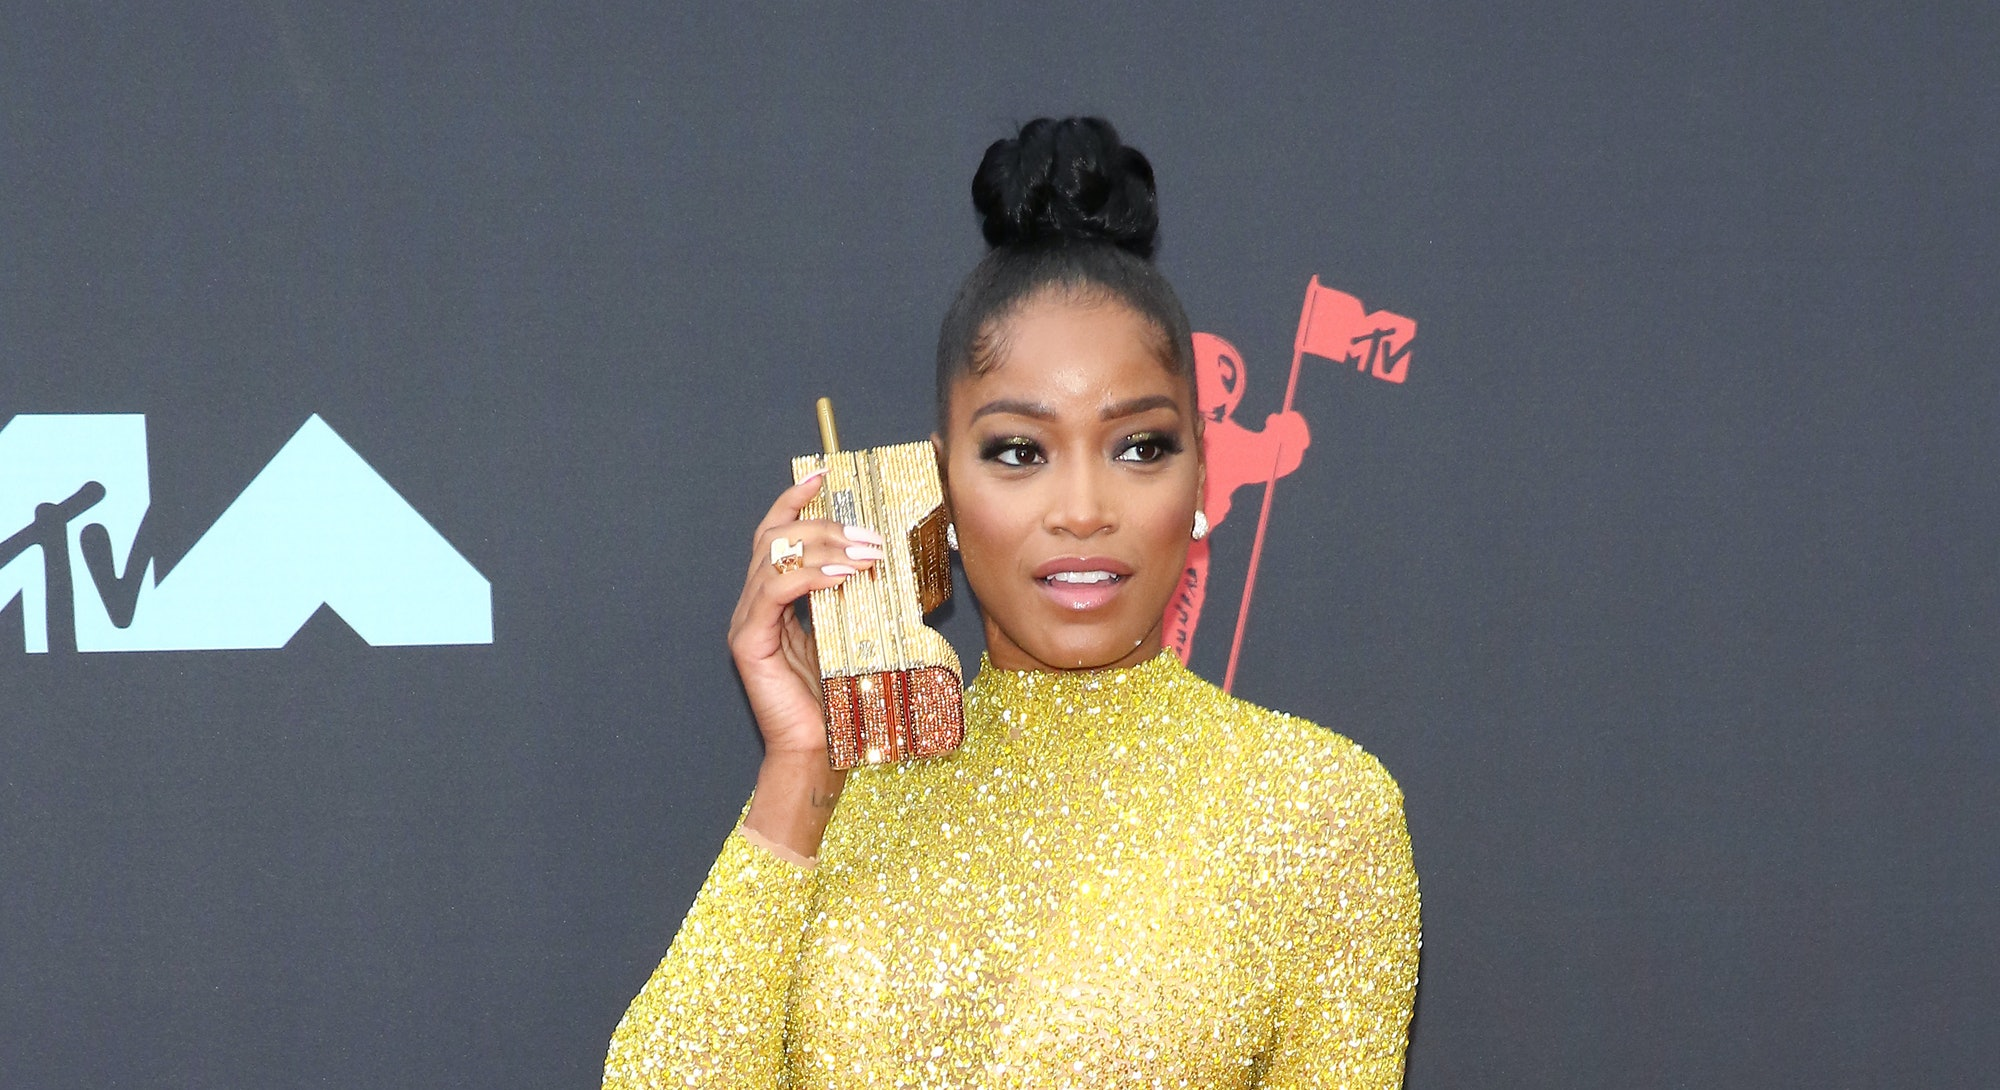 NEWARK, NEW JERSEY - AUGUST 26: Keke Palmer attends the 2019 MTV Video Music Awards at Prudential Ce...